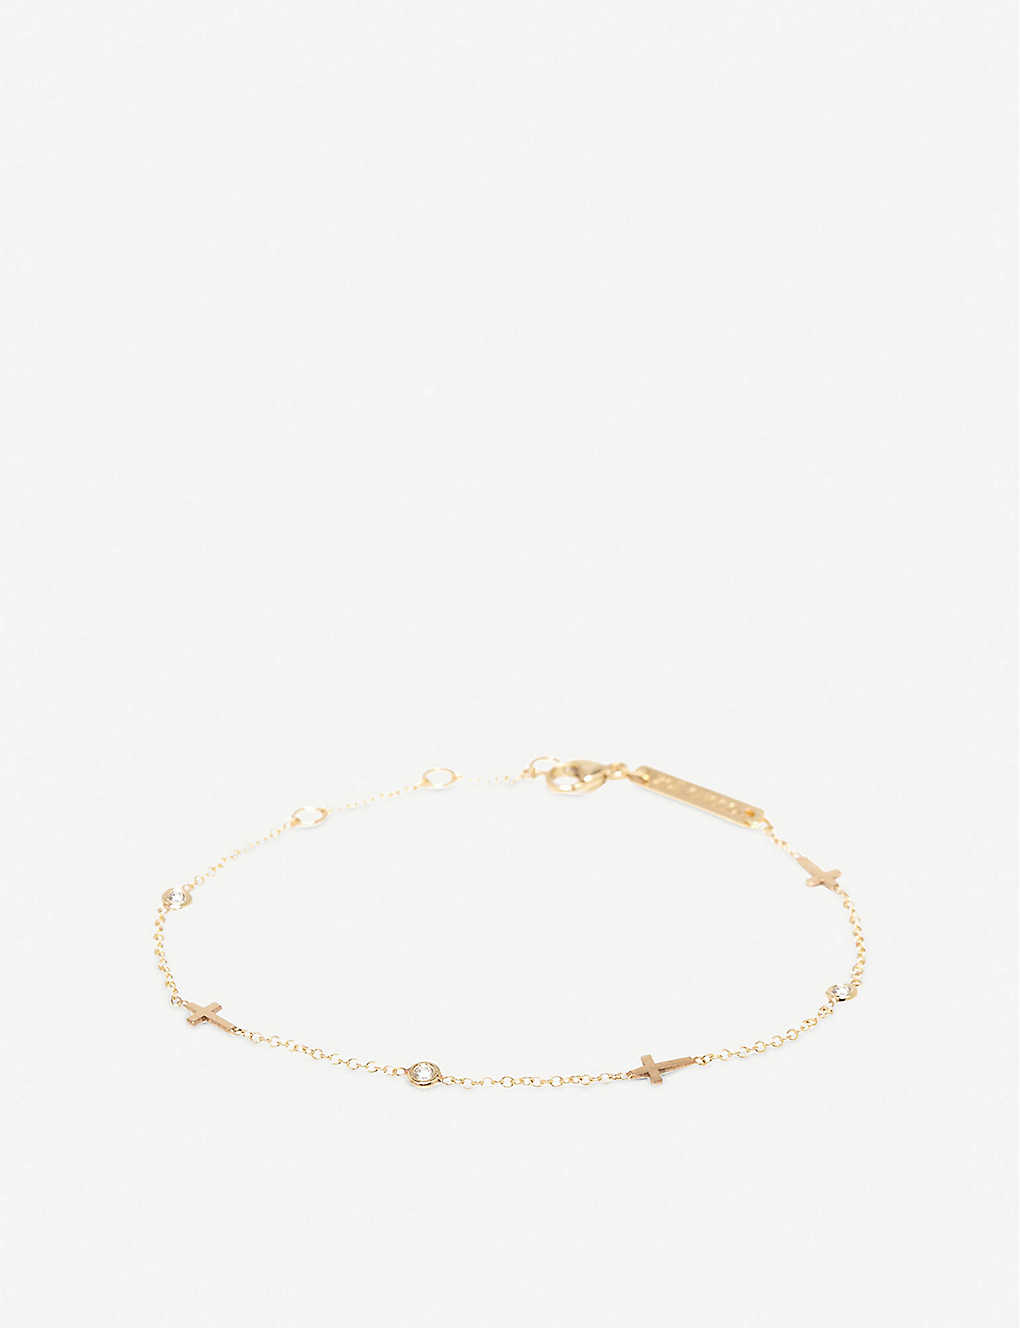 THE ALKEMISTRY: Zoë Chicco 14ct yellow-gold and diamond bracelet